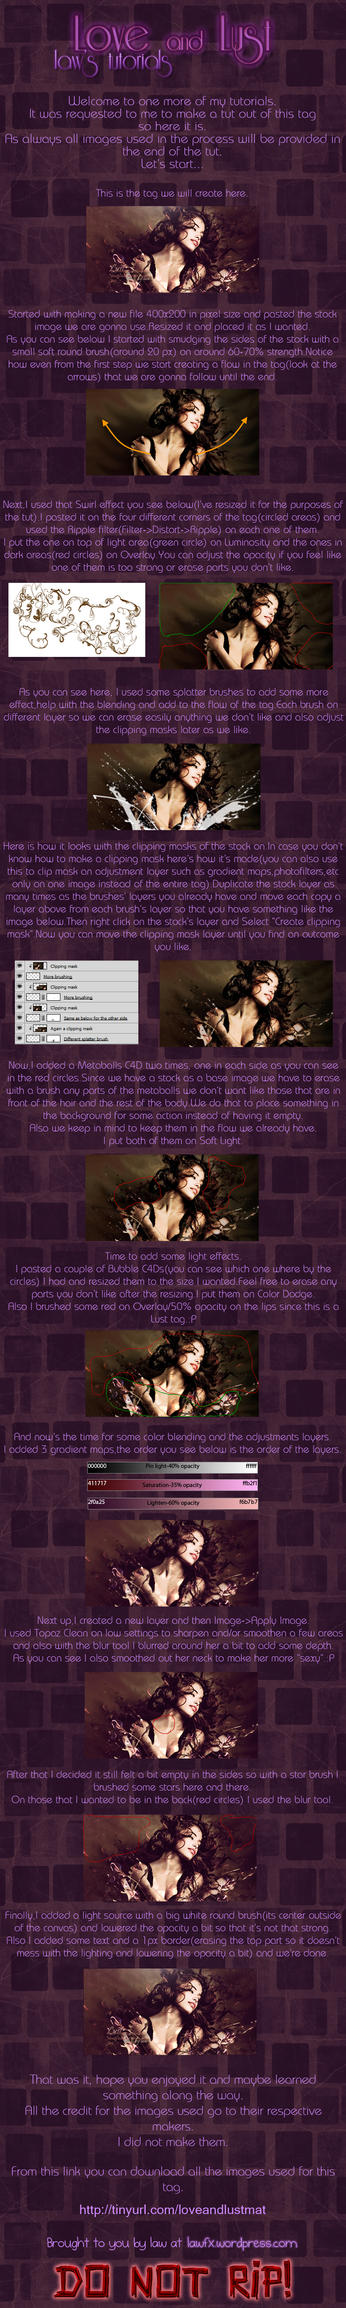 Love and lust tutorial by lawfx